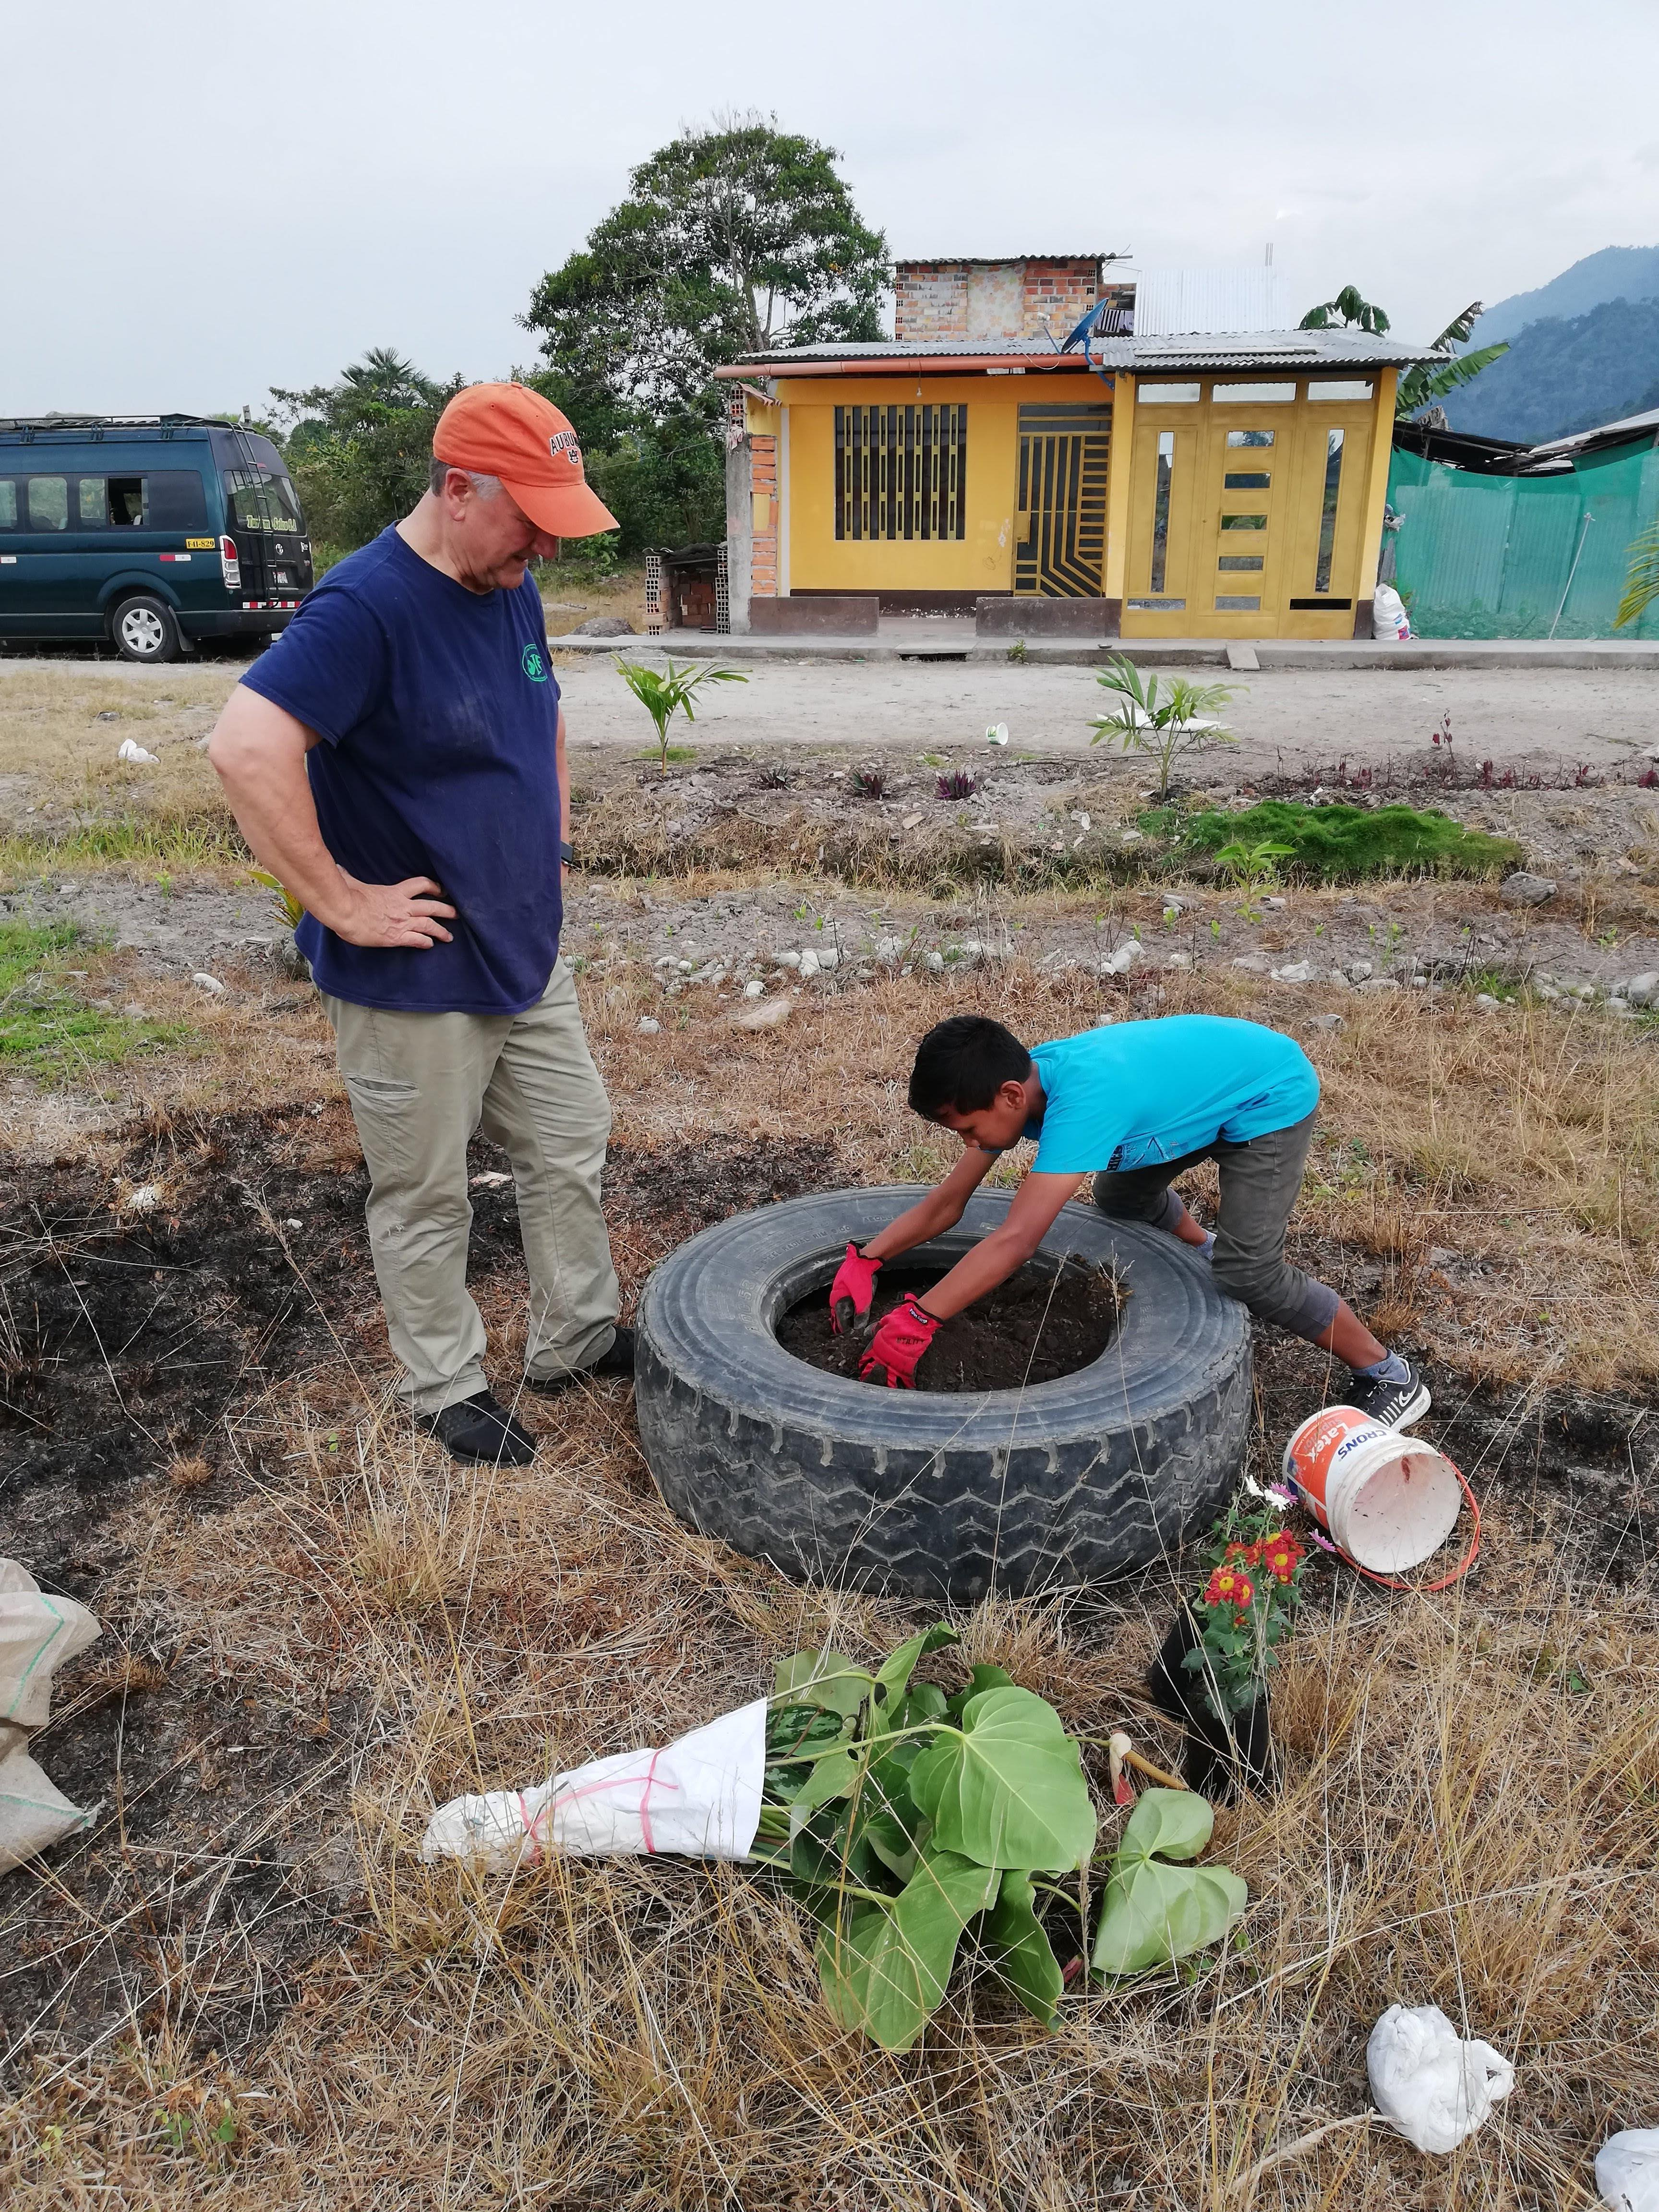 Miguel demonstrating his planting skills to Pastor Ron Shive.